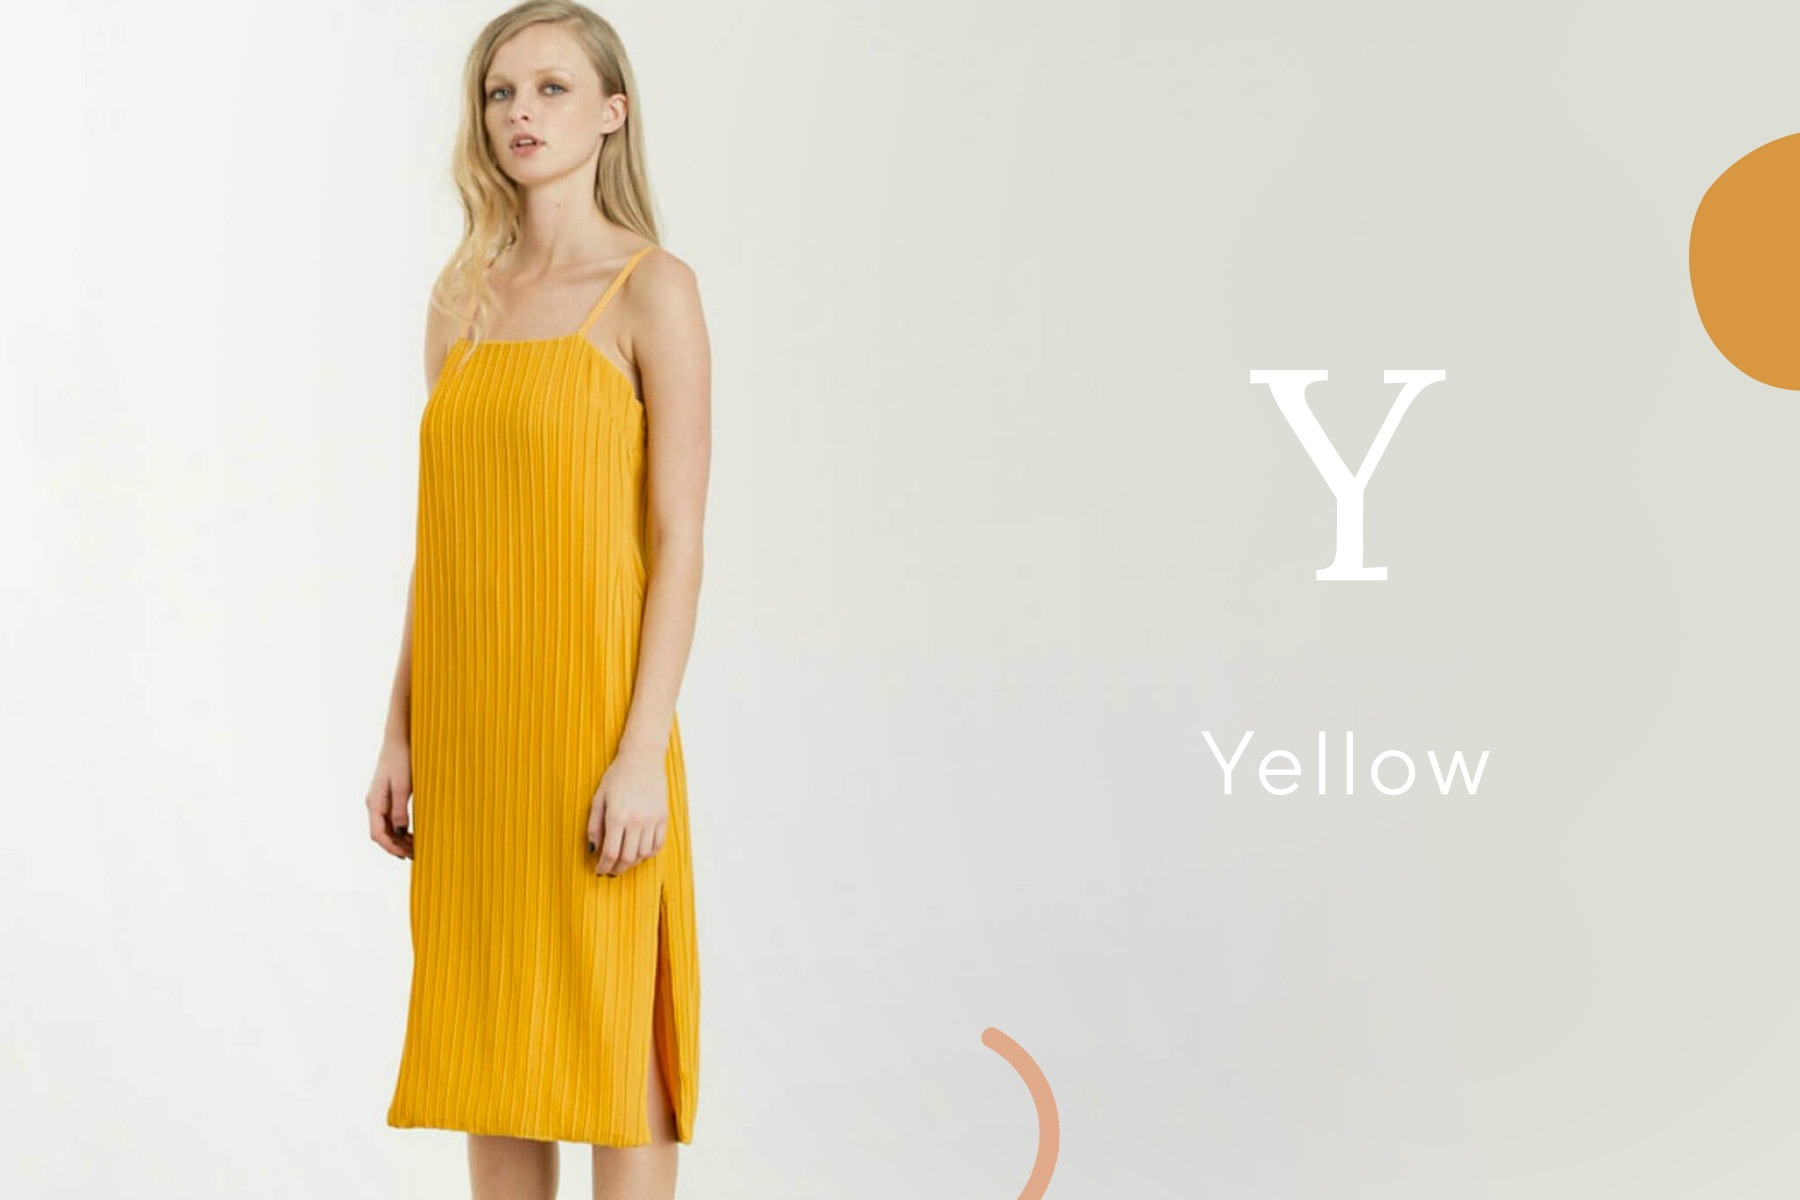 b233f1541b31ee How To Wear Yellow Without Looking Like A Lemon - Infinite by Style Theory